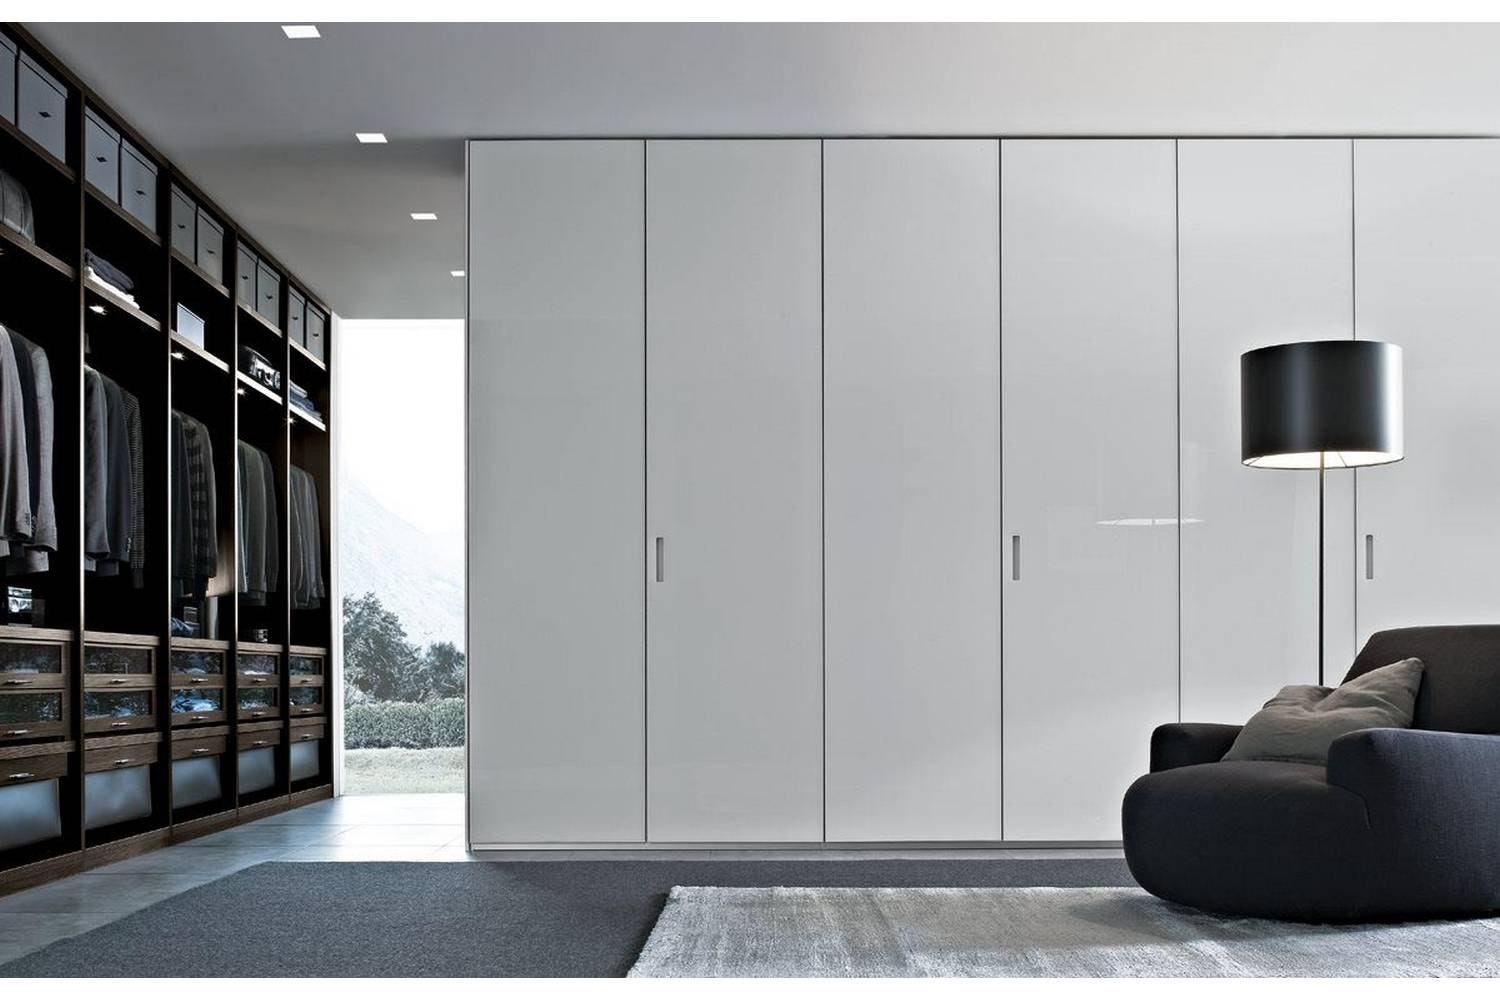 Ocean Wardrobe by CR&S Poliform for Poliform